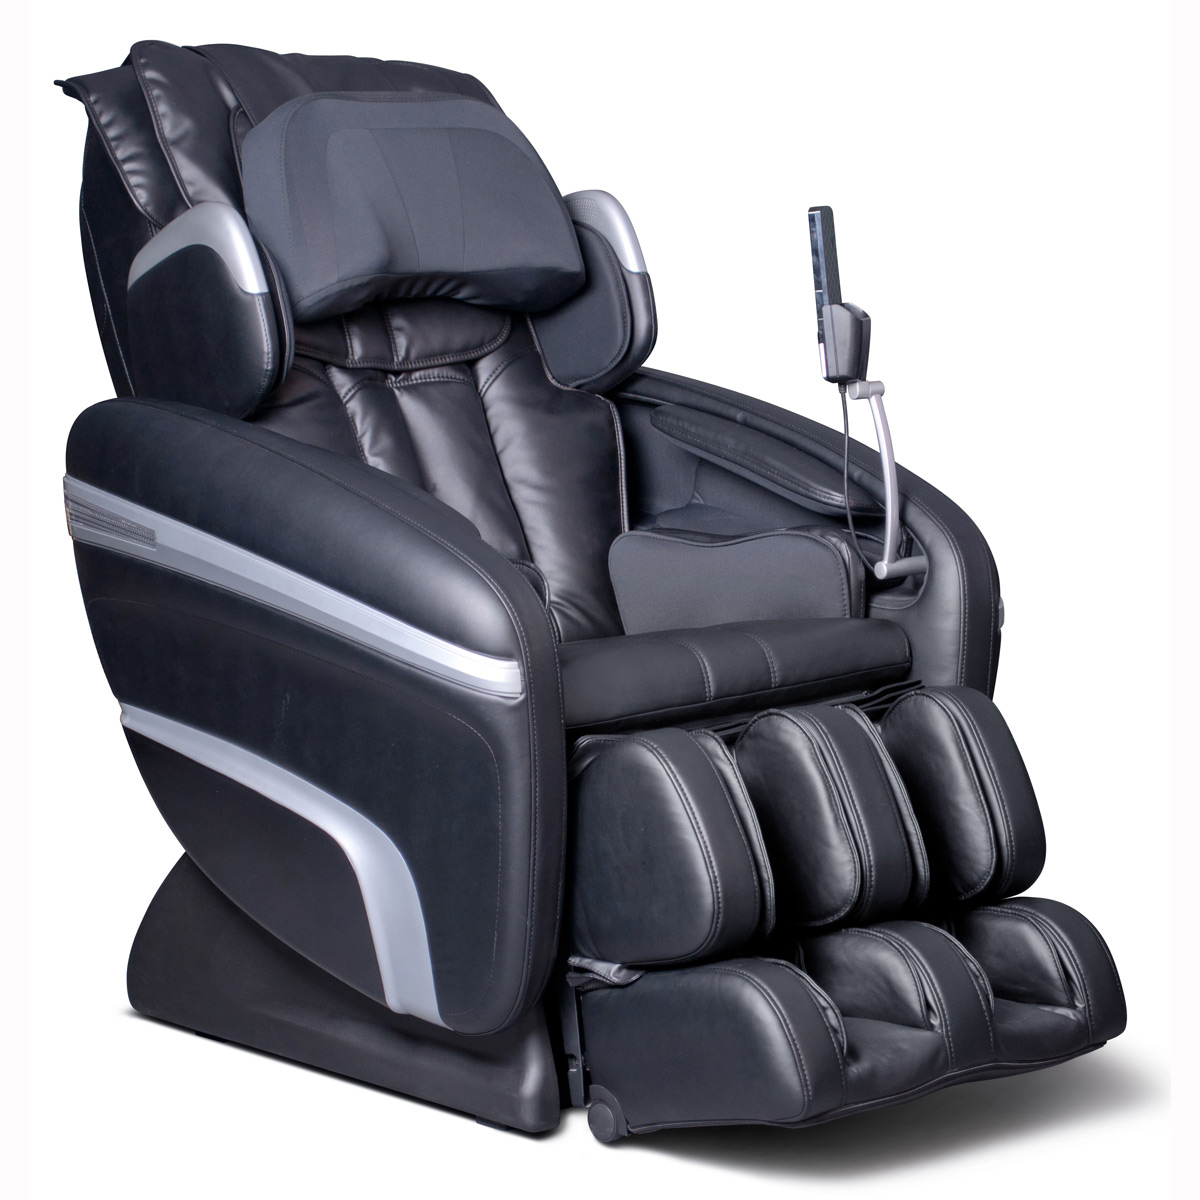 Osaki 7200 Executive Zero Gravity S- Track Heated Massage Chair